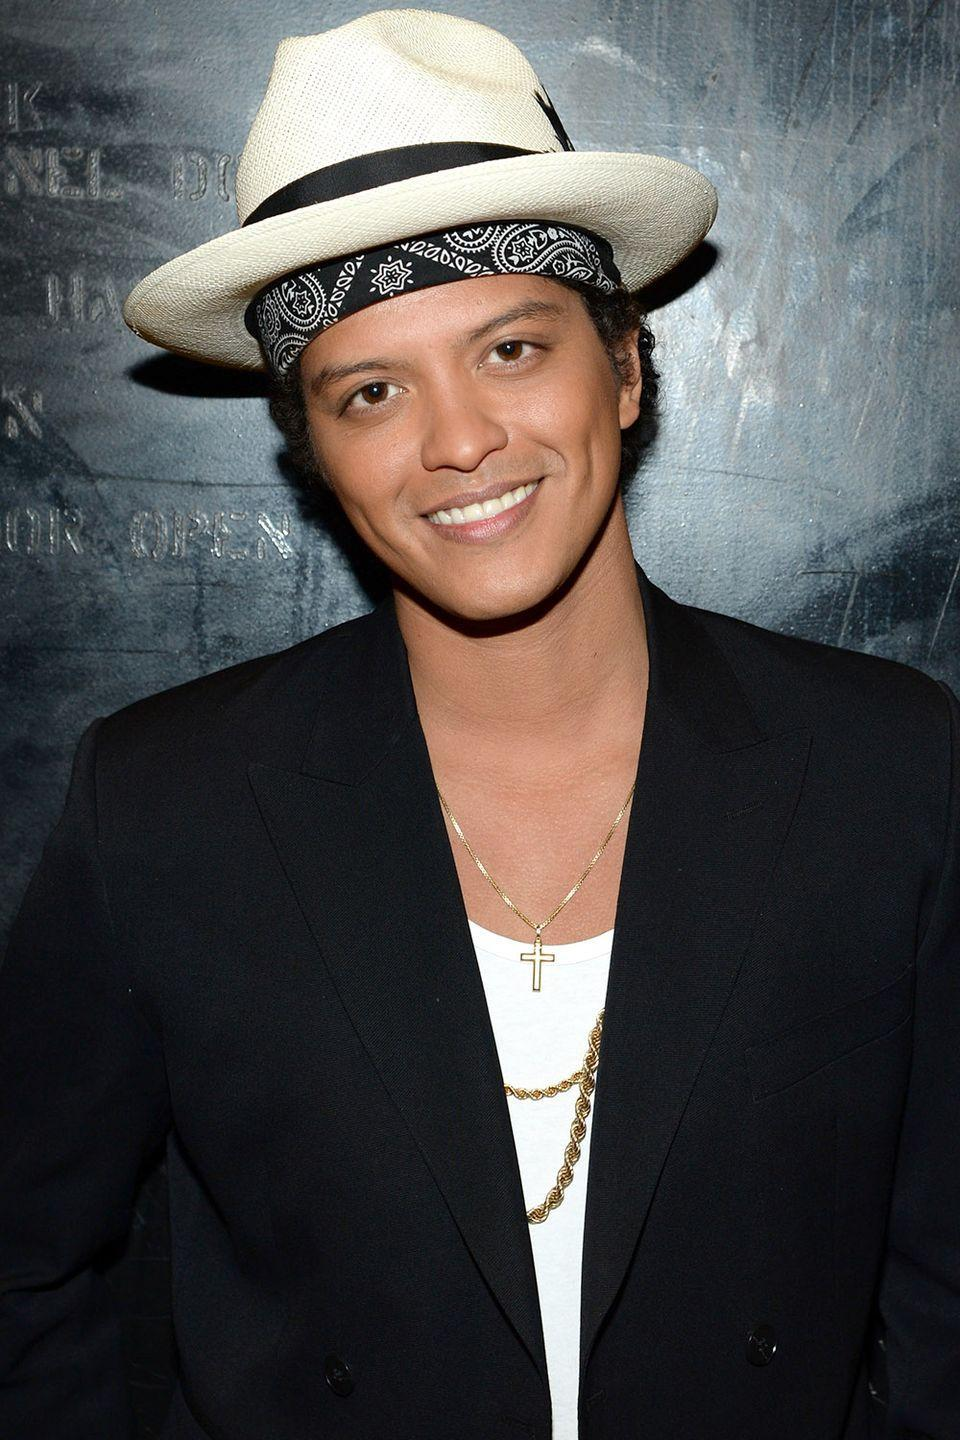 """<p><strong>Born</strong>: Peter Gene Hernandez</p><p>In a 2013 interview with <em><a href=""""https://www.gq.com/story/bruno-mars-interview-gq-april-2013#ixzz2OD5xERaE"""" rel=""""nofollow noopener"""" target=""""_blank"""" data-ylk=""""slk:GQ"""" class=""""link rapid-noclick-resp"""">GQ</a></em>, the """"Finesse"""" singer explained that he's been Bruno for almost his entire life. Though he was born Peter Hernandez, he received the nickname Bruno because as a toddler, he looked like the famous wrestler Bruno Sammartino. But Bruno Hernandez wasn't cutting it in the music world. """"Your last name's Hernandez, maybe you should do this Latin music, this Spanish music... Enrique's so hot right now,"""" the singer told the publication of the responses he received while trying to start his music career. Thus, he adopted the Mars surname.</p>"""